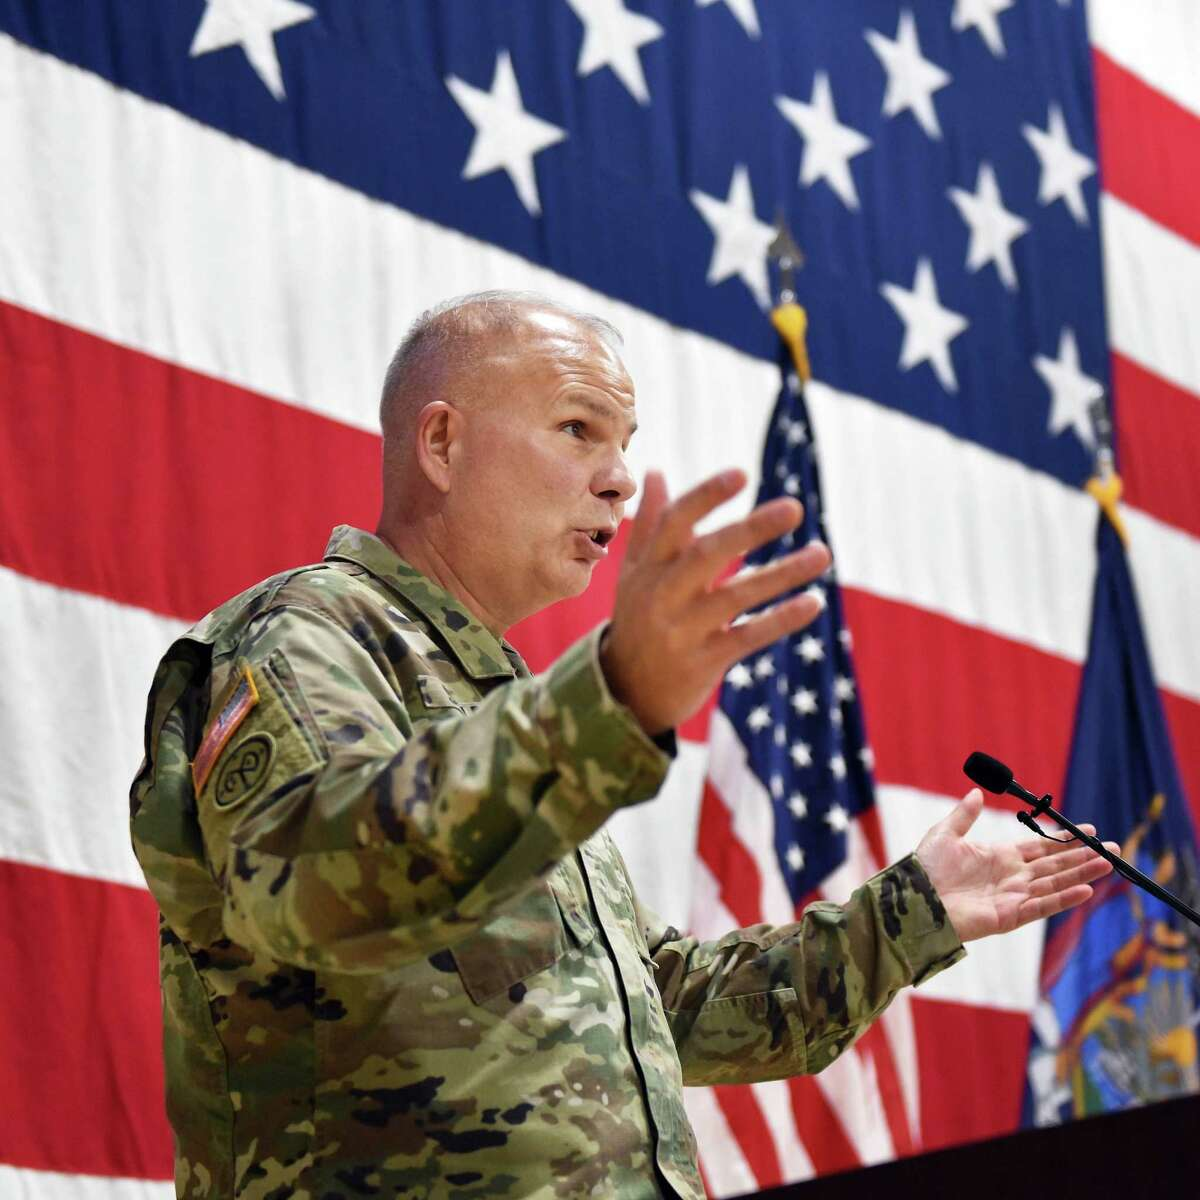 Incoming Adjutant General of the N.Y. National Guard Major General Raymond Shields, Jr., speaks during a Change of Command ceremony at the Division of Military & Naval Affairs Friday Oct. 19, 2018 in Colonie, NY. (John Carl D'Annibale/Times Union)